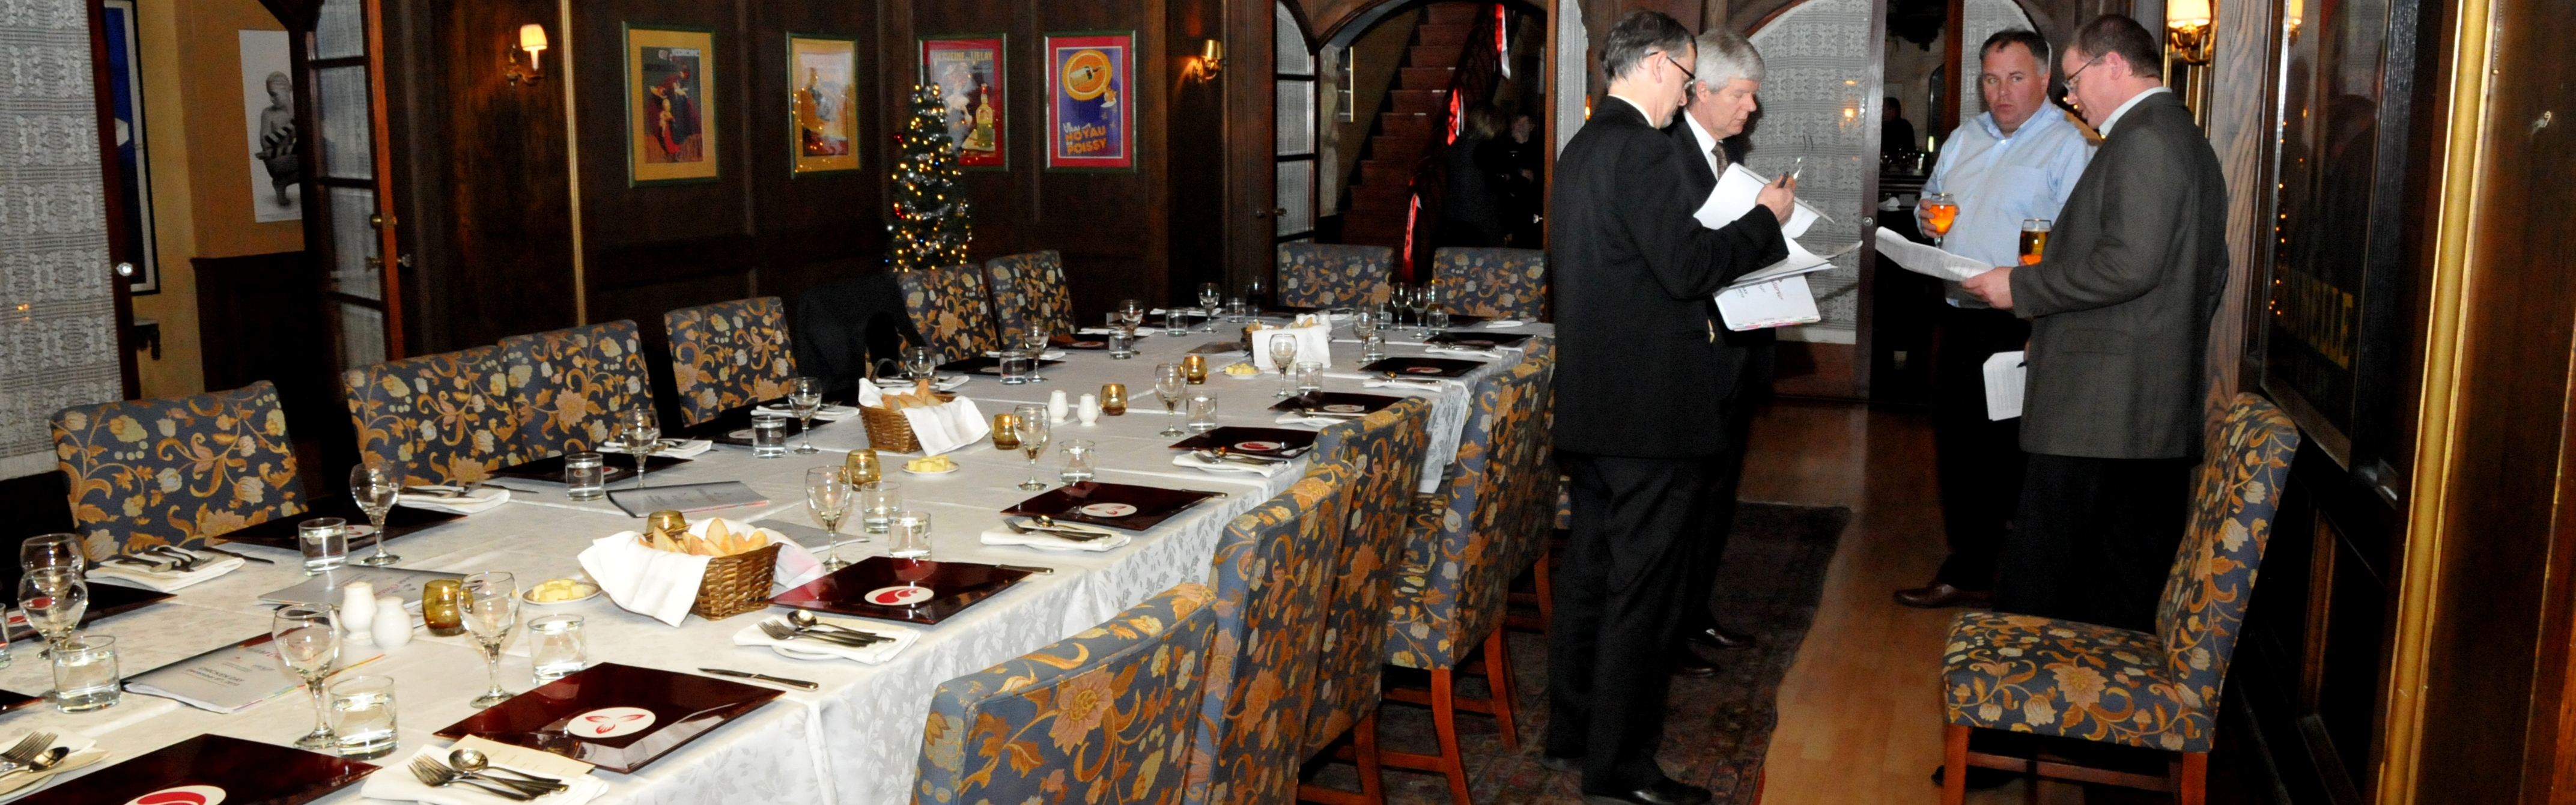 Toronto Event Planners including Conferences, Meetings and Annual General Meetings